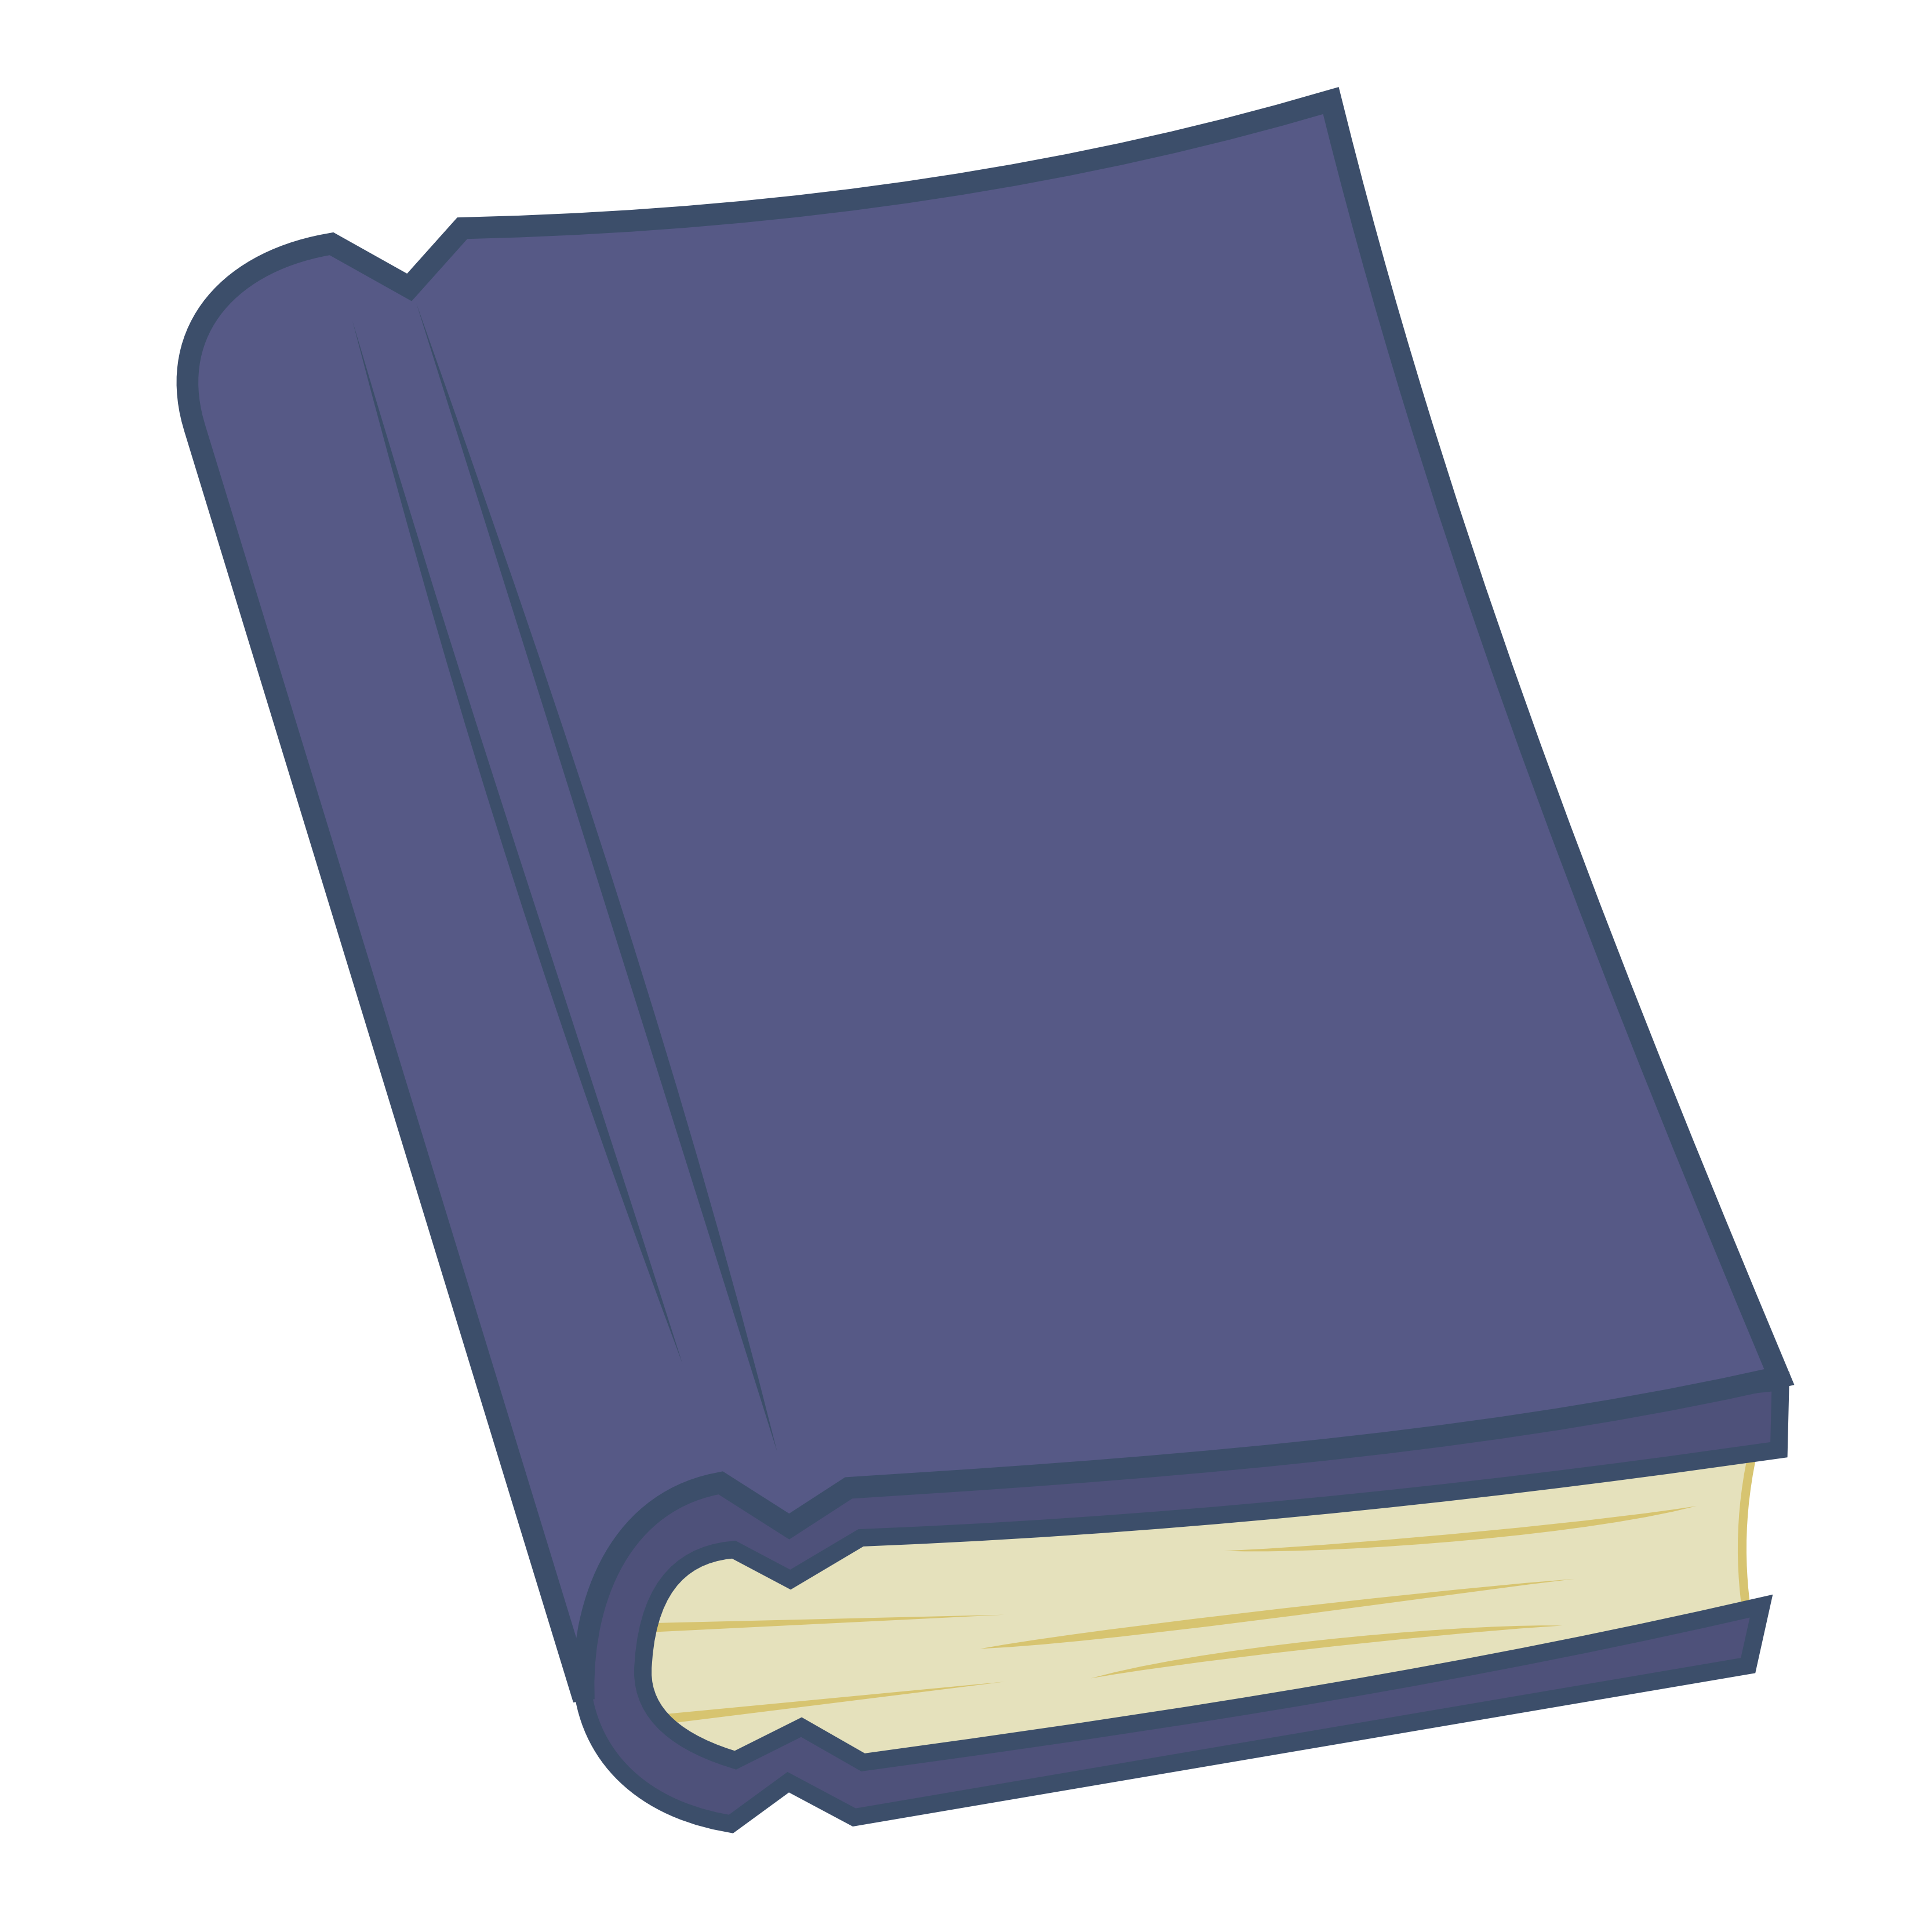 book cover clipart - photo #35